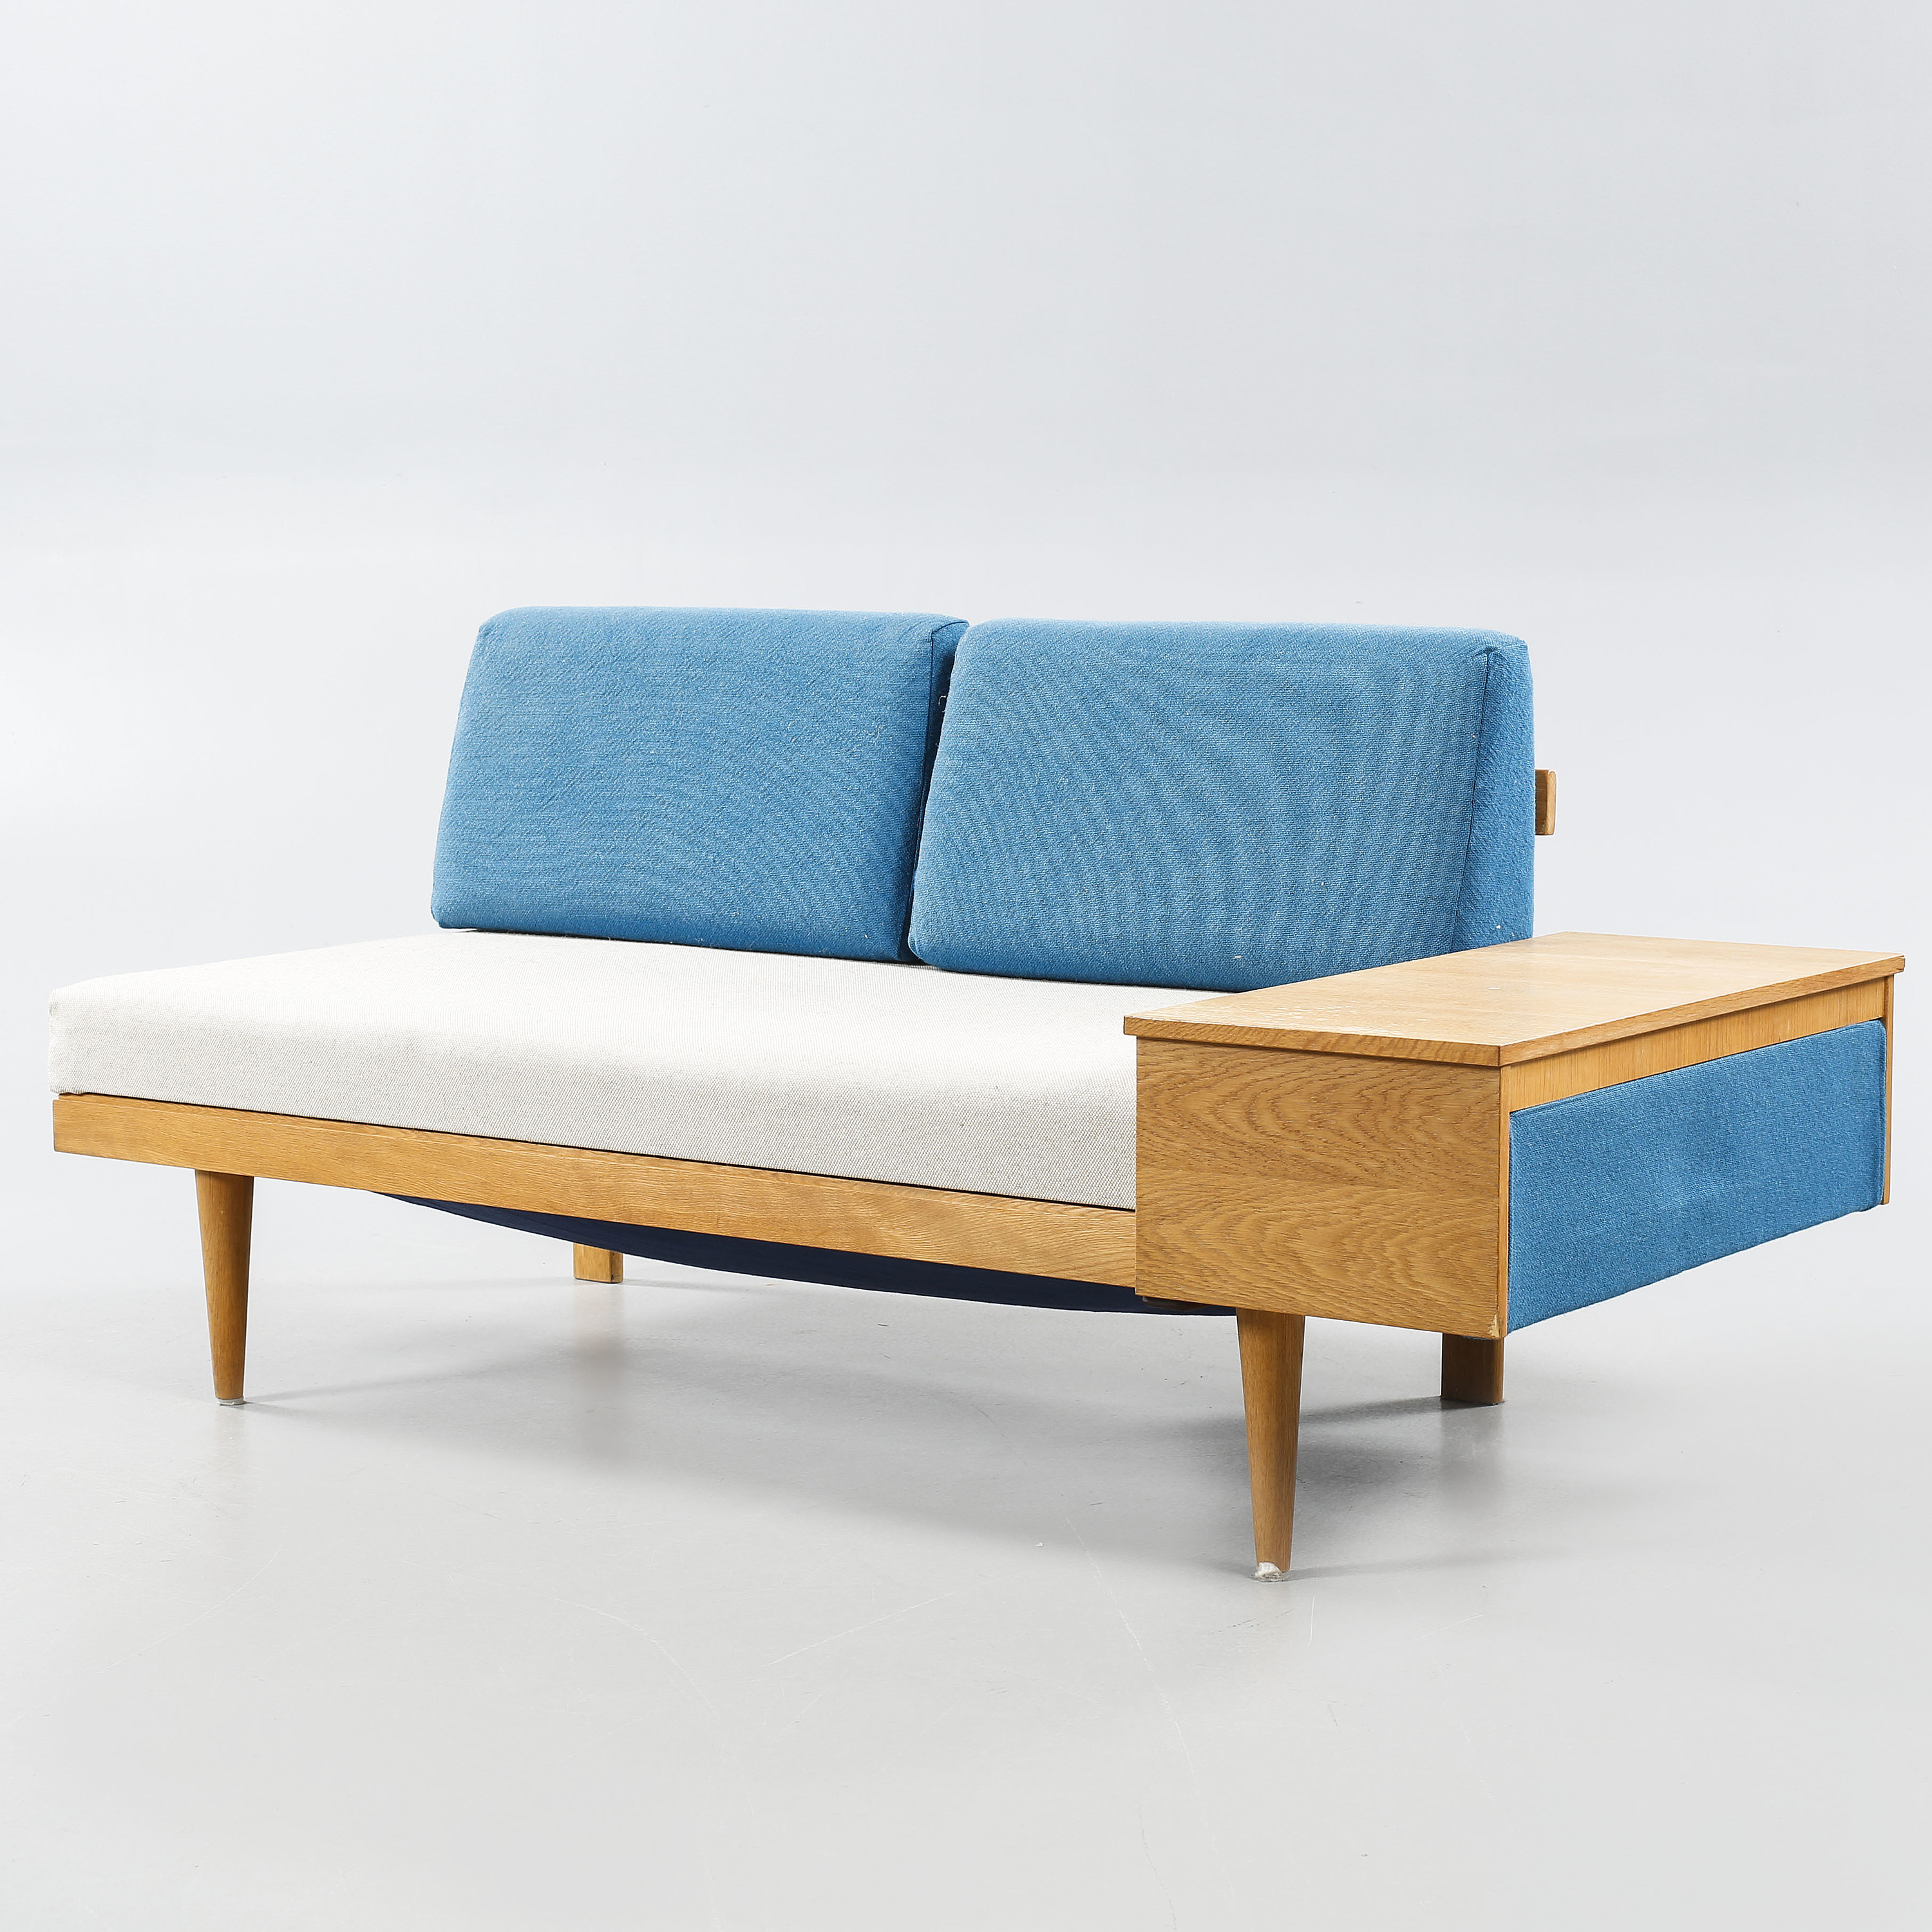 Ryddig A Svanette daybed / sofa from the Svane series, Haldor Vik and KN-48